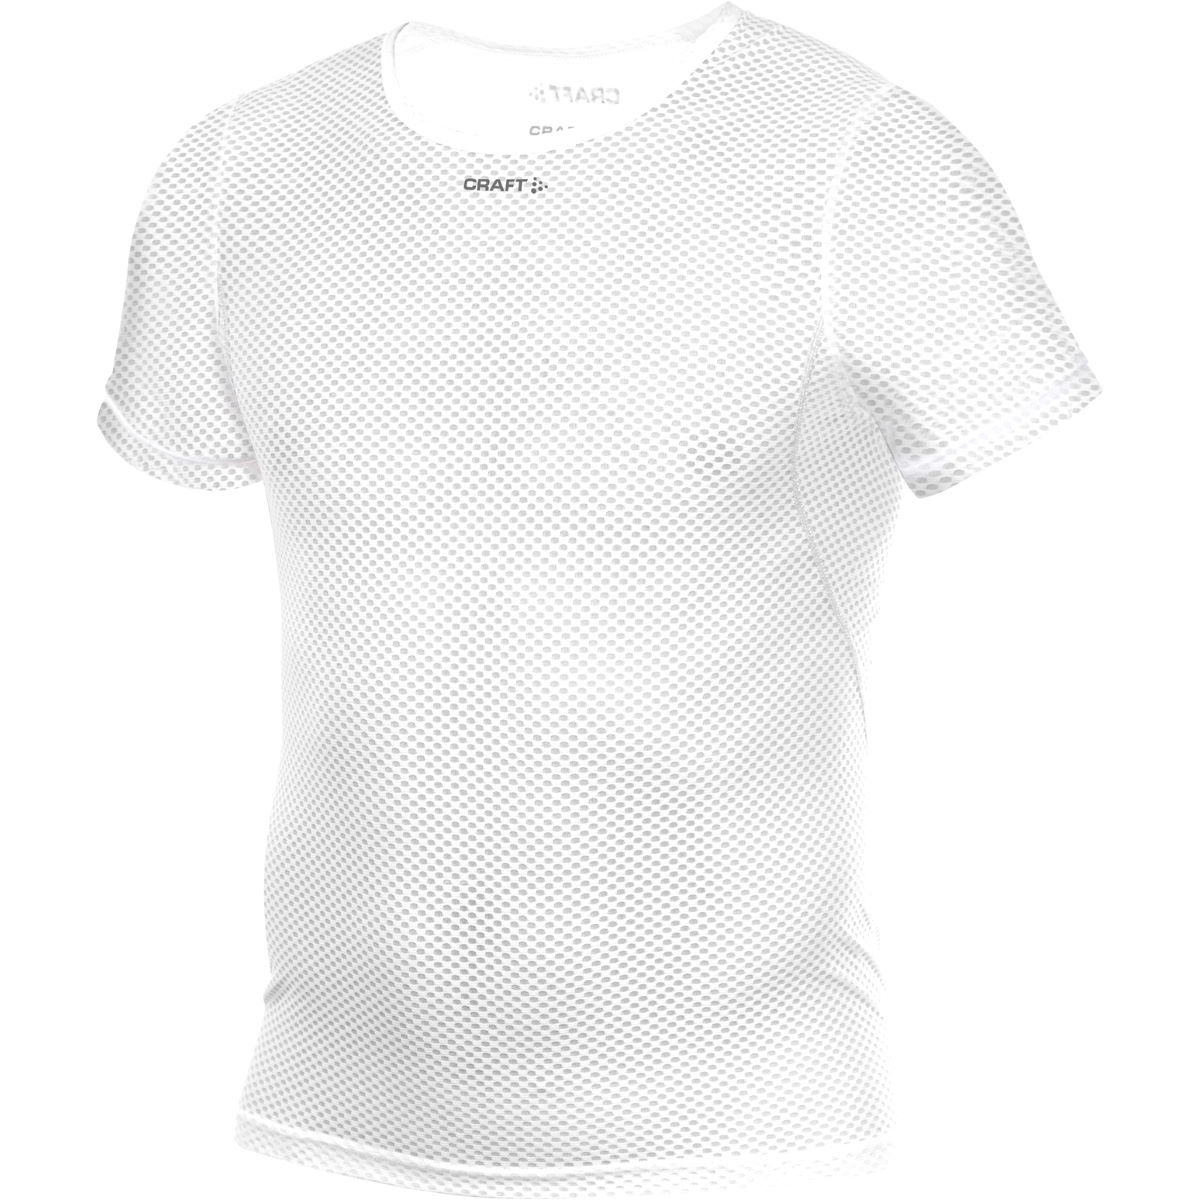 Craft cool mesh superlight short sleeve base layer base layers white 1900435 1900 3